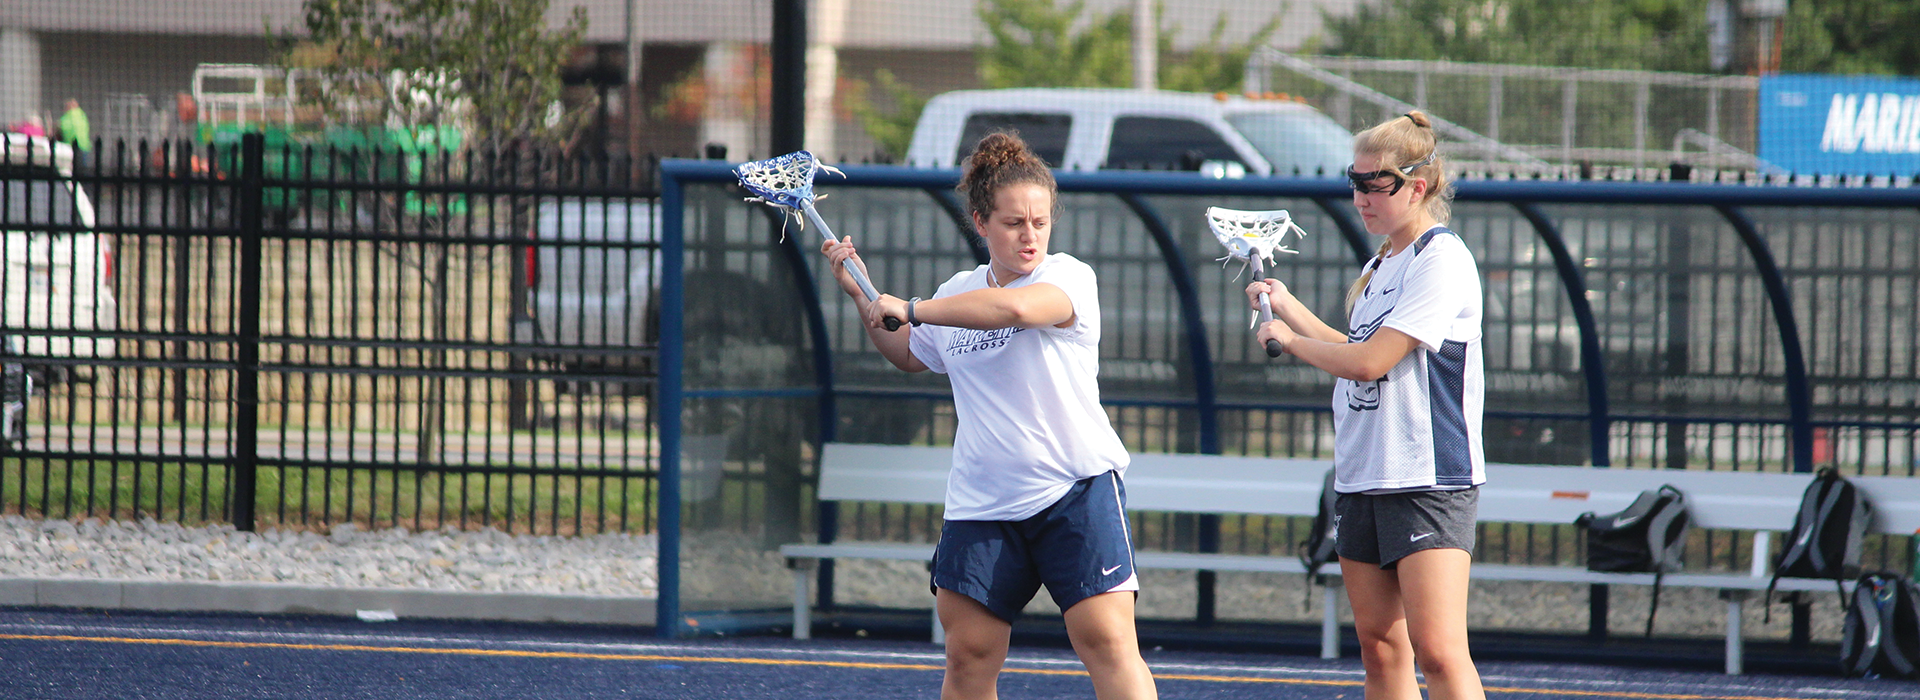 Jordan Anderson '17 provides a few pointers as the assistant women's lacrosse coach for Marietta College. Photo courtesy of Jeffrey Schaly, Marietta College